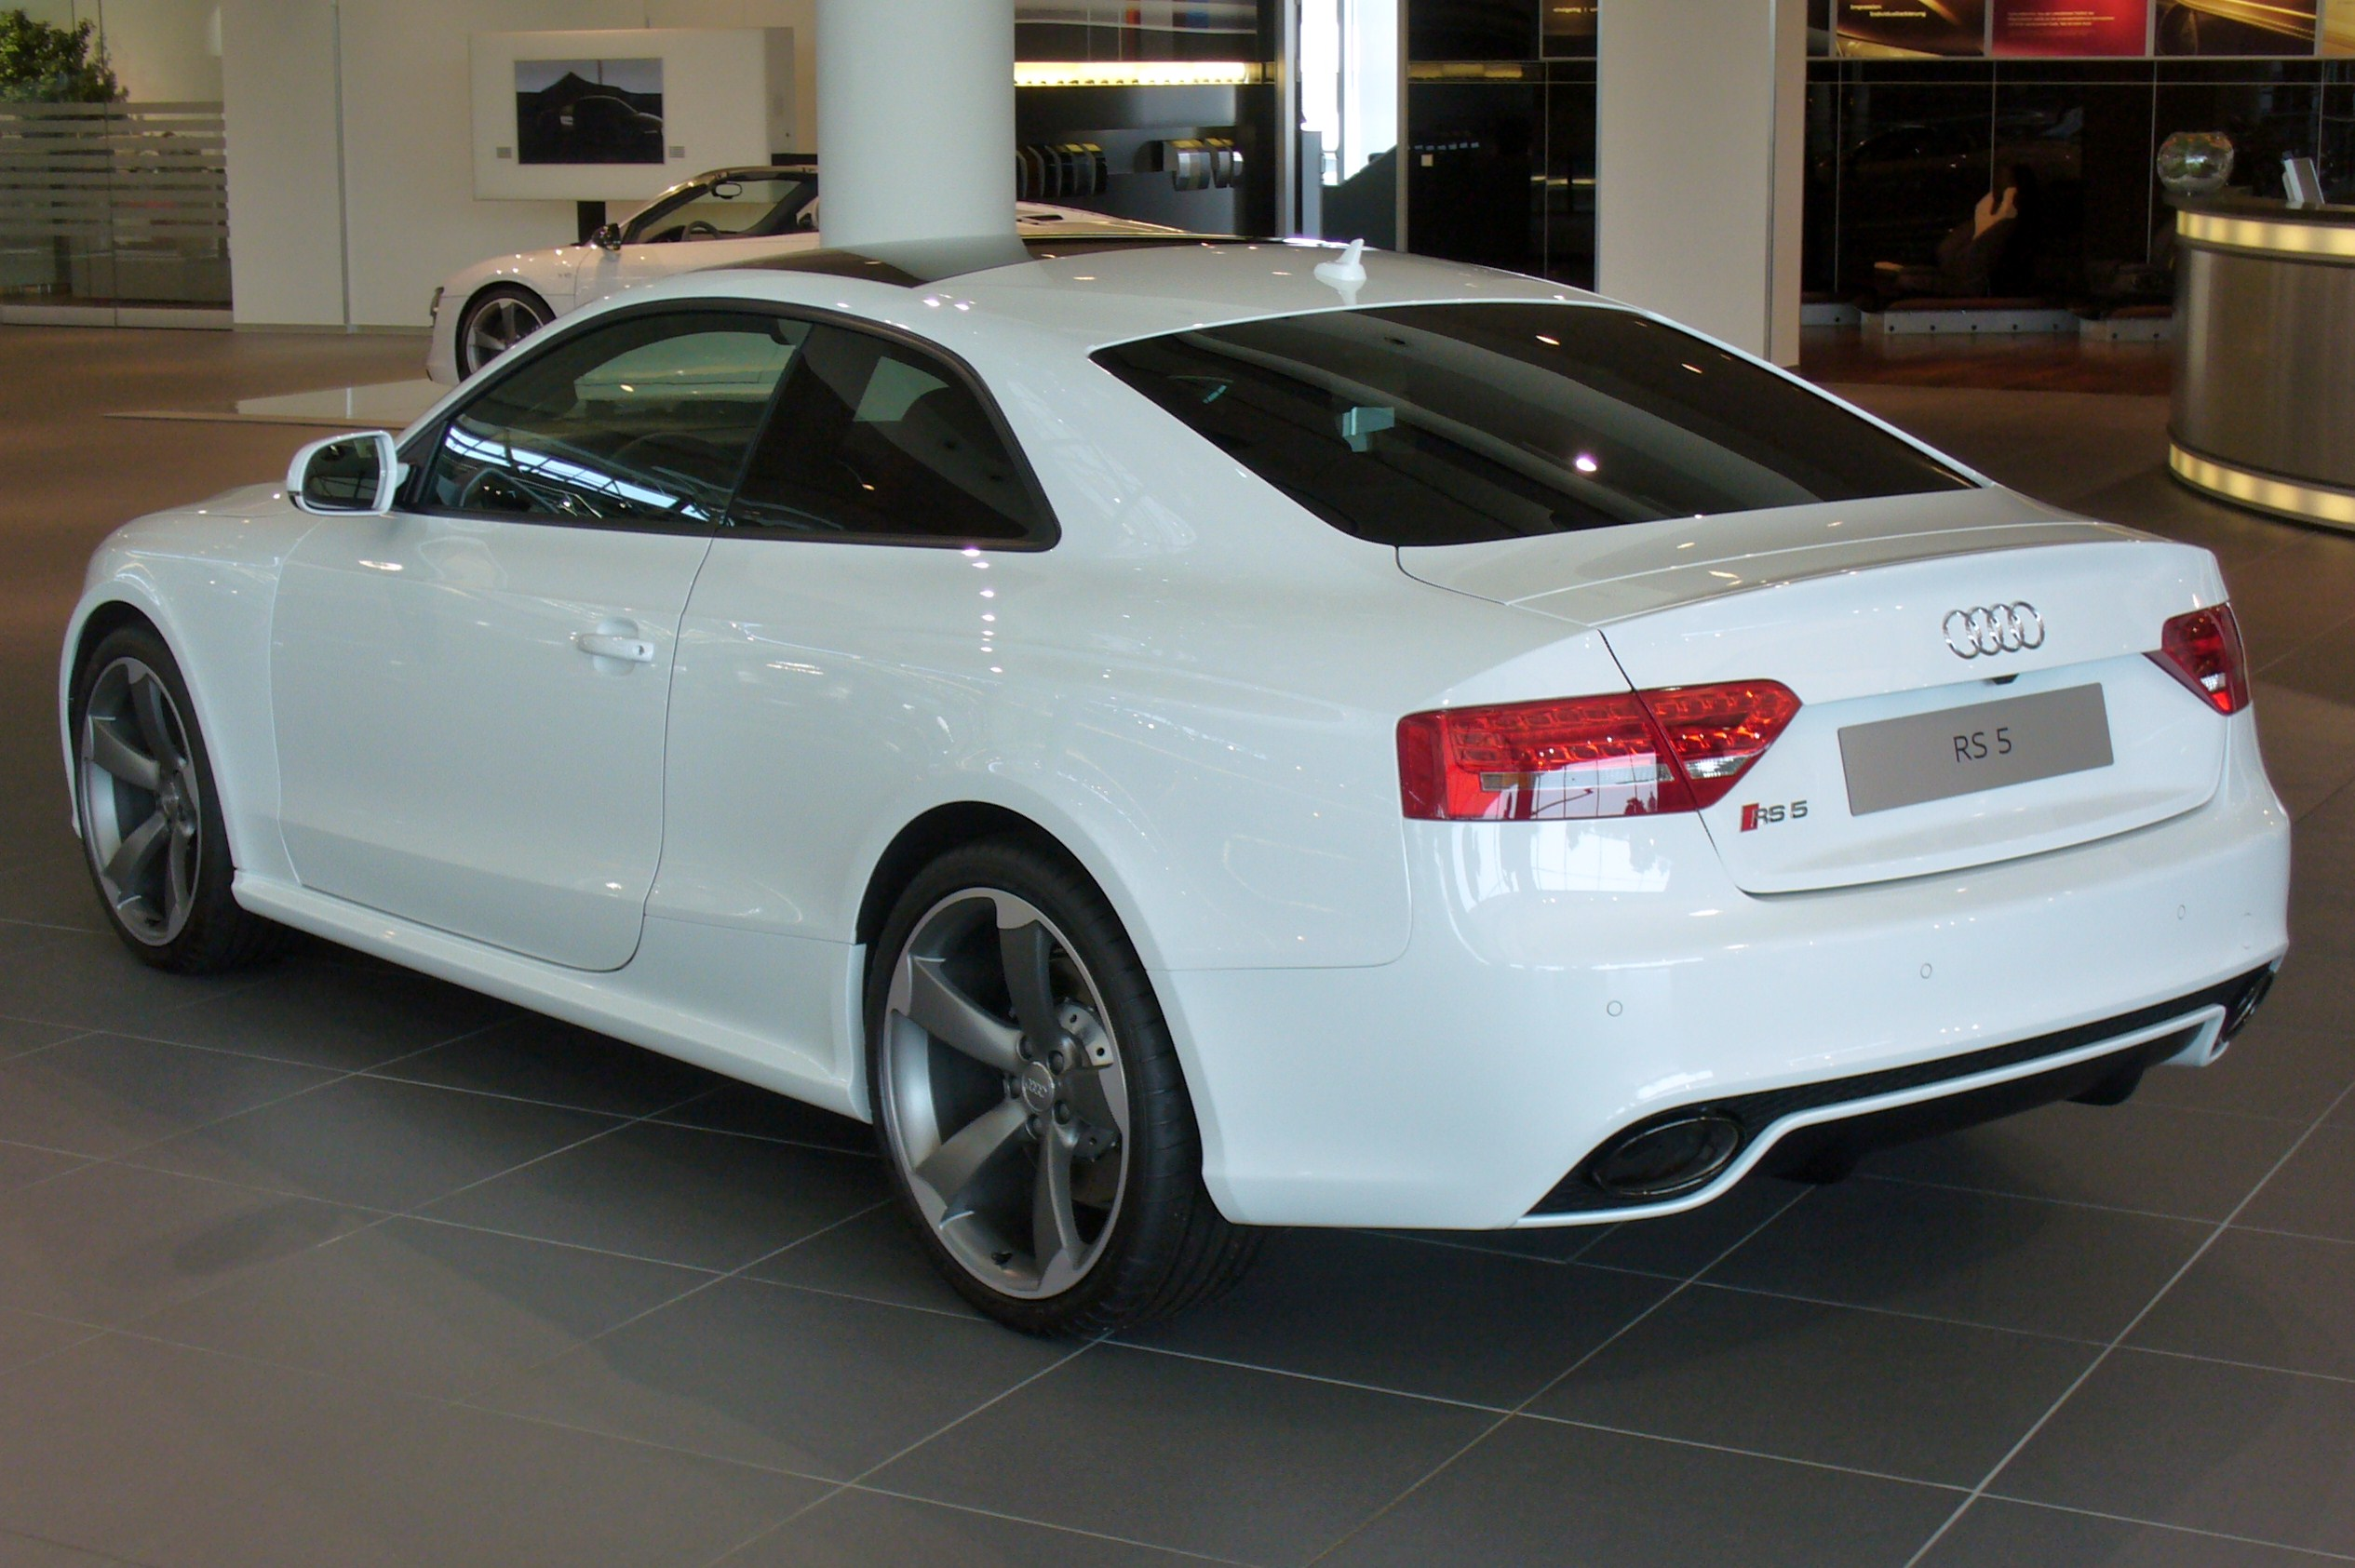 Audi A4 Coupe File Audi Rs5 Coupé 4 2 Fsi Quattro S Tronic Heck Jpg Wikimedia